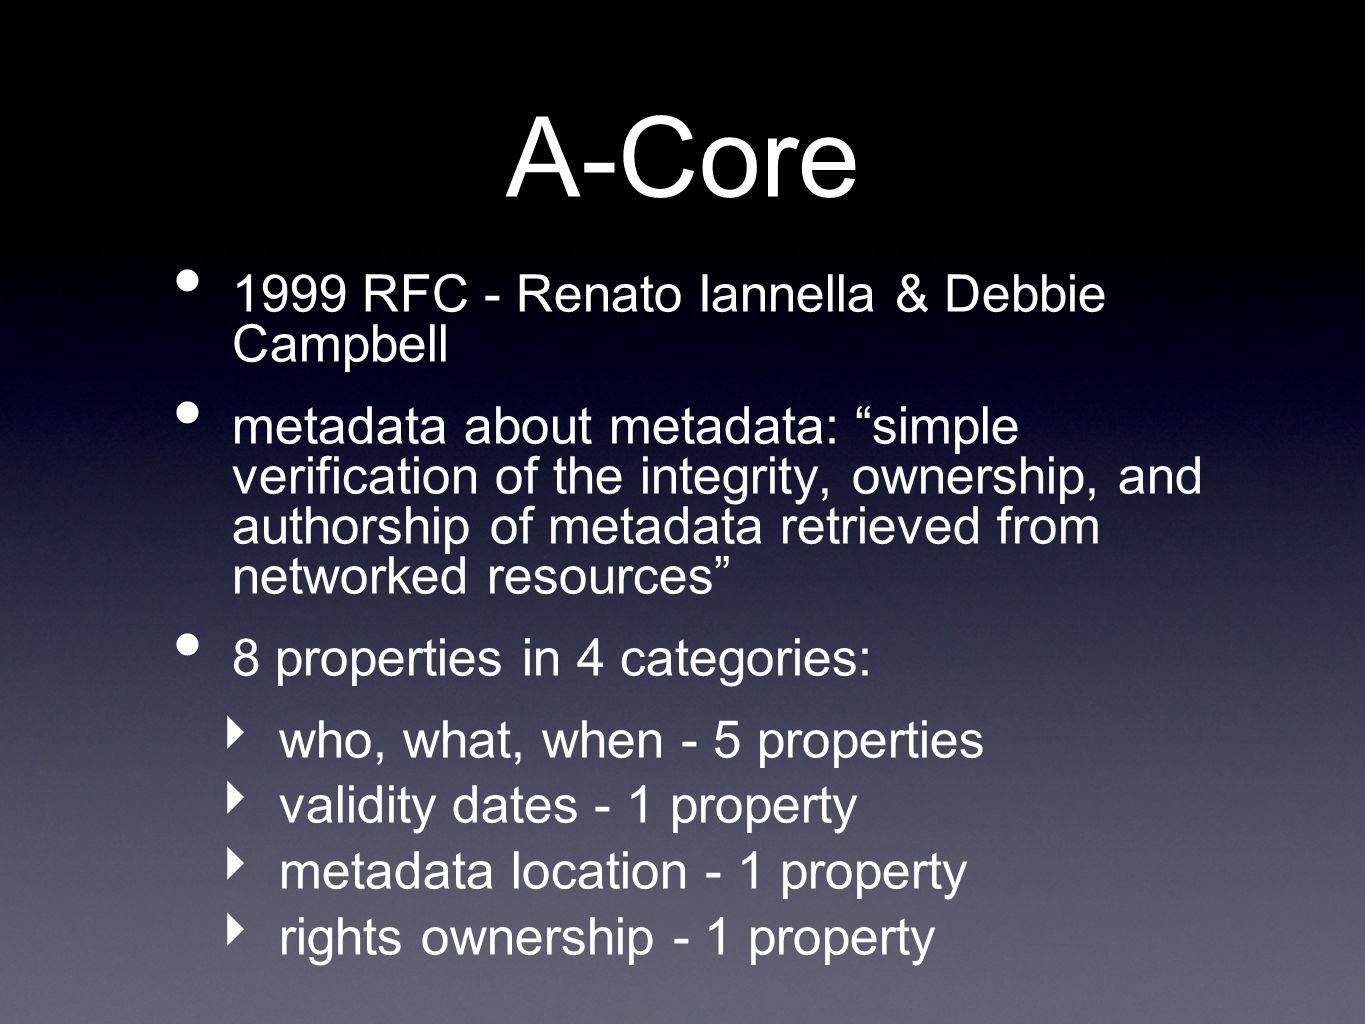 A-Core 1999 RFC - Renato Iannella & Debbie Campbell metadata about metadata: simple verification of the integrity, ownership, and authorship of metadata retrieved from networked resources 8 properties in 4 categories: who, what, when - 5 properties validity dates - 1 property metadata location - 1 property rights ownership - 1 property